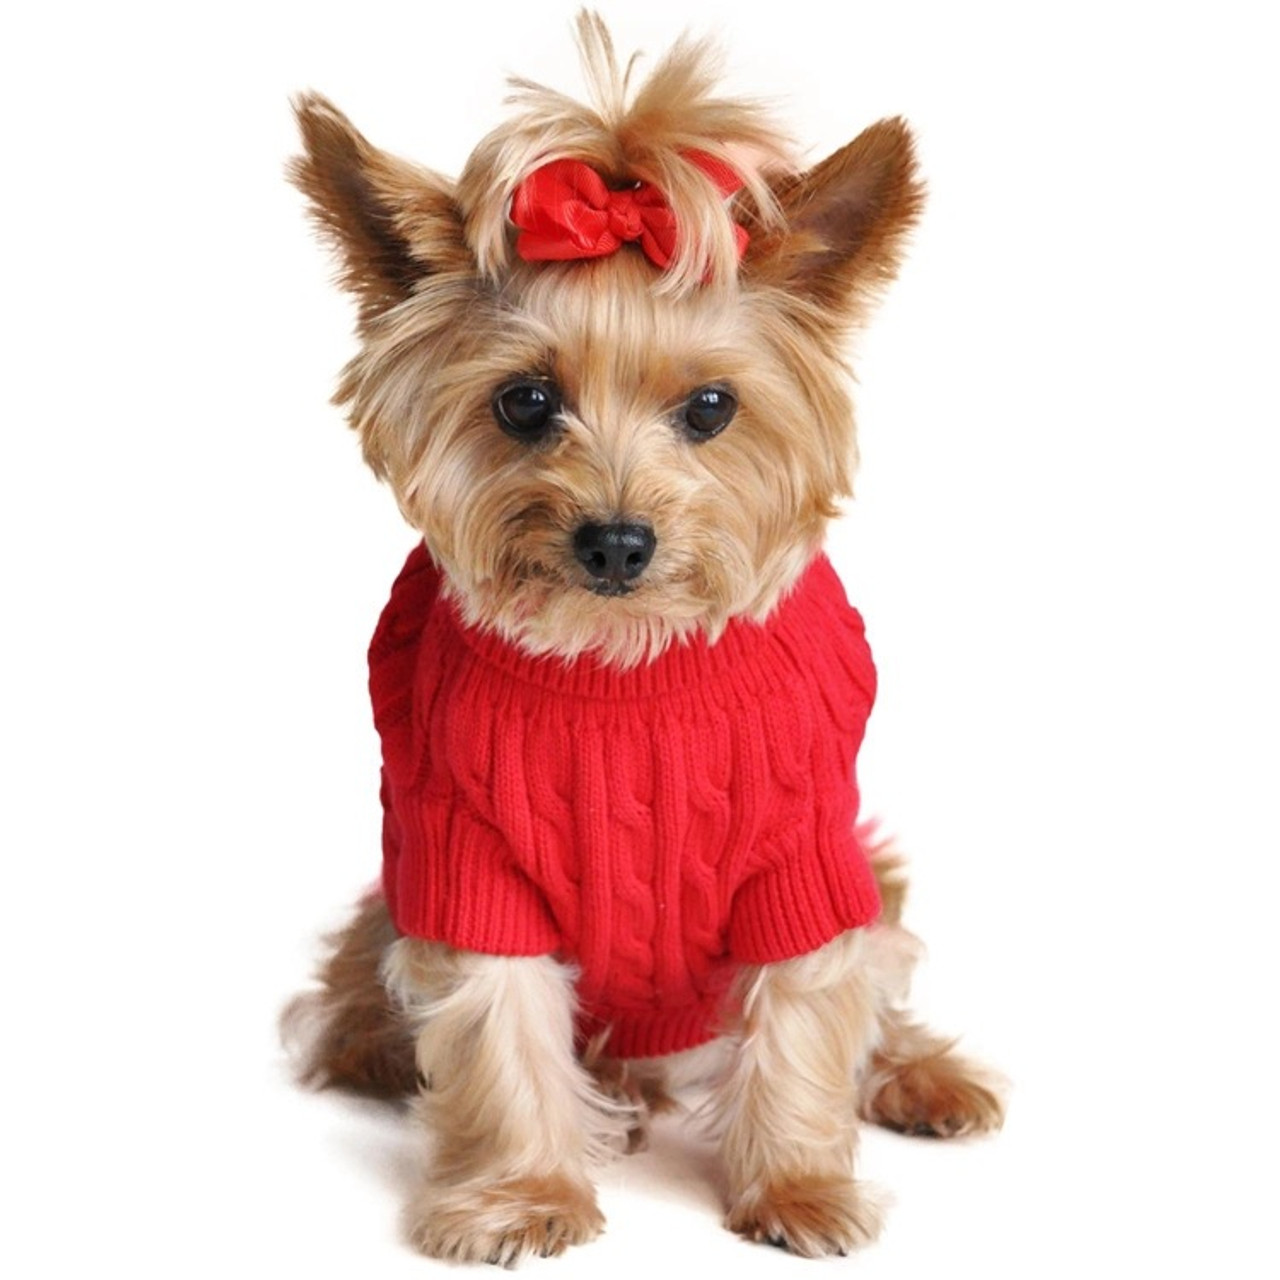 fce59764c5d5 2018 Pet Clothing Autumn And Winter Twist Knitting Puppy Sweater